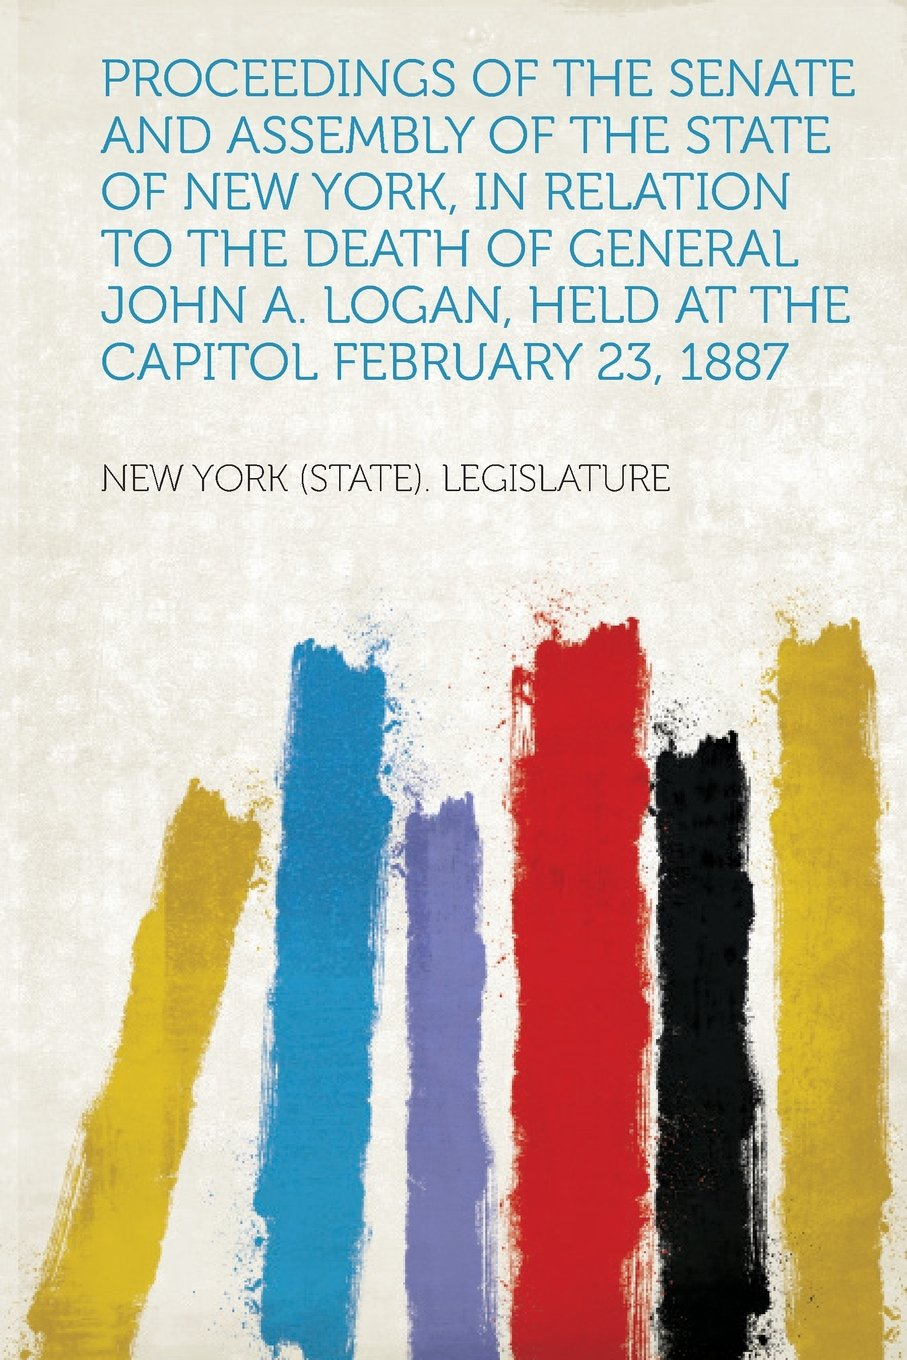 Download Proceedings of the Senate and Assembly of the State of New York, in Relation to the Death of General John A. Logan, Held at the Capitol February 23, 1 ePub fb2 ebook